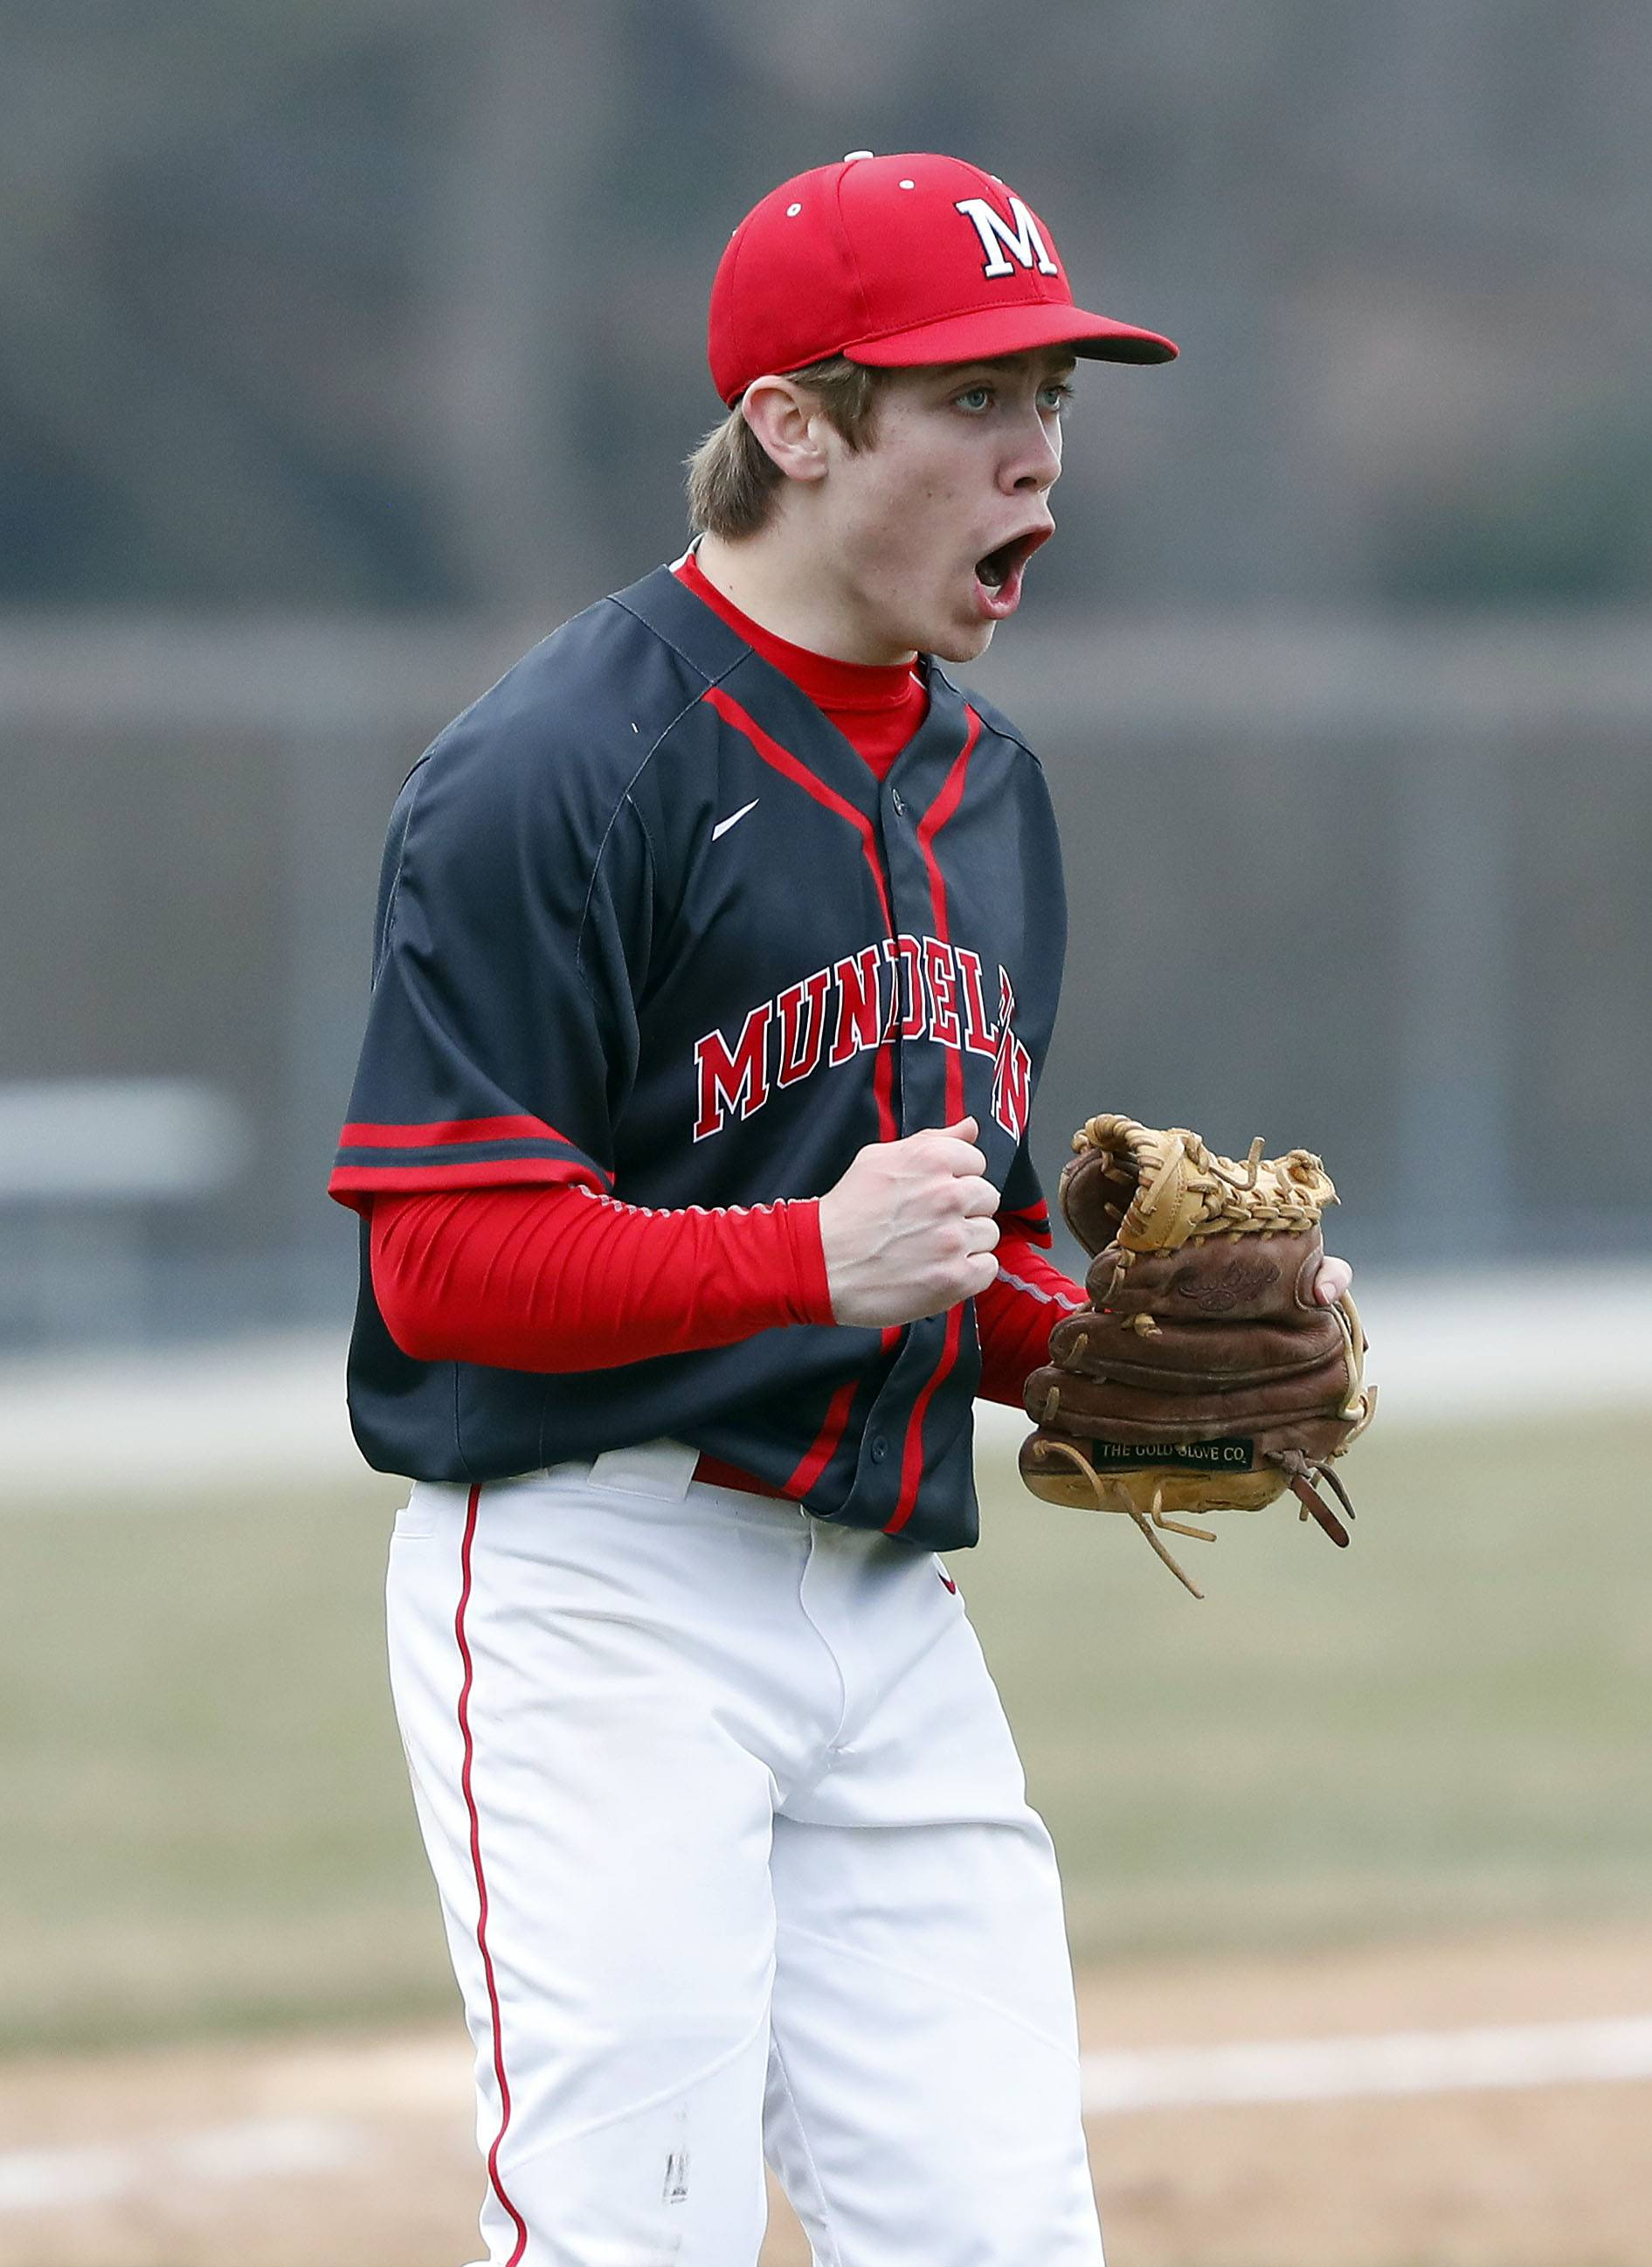 Mundelein pitcher Austin Greco argues a call against Stevenson on Wednesday in Lincolnshire.